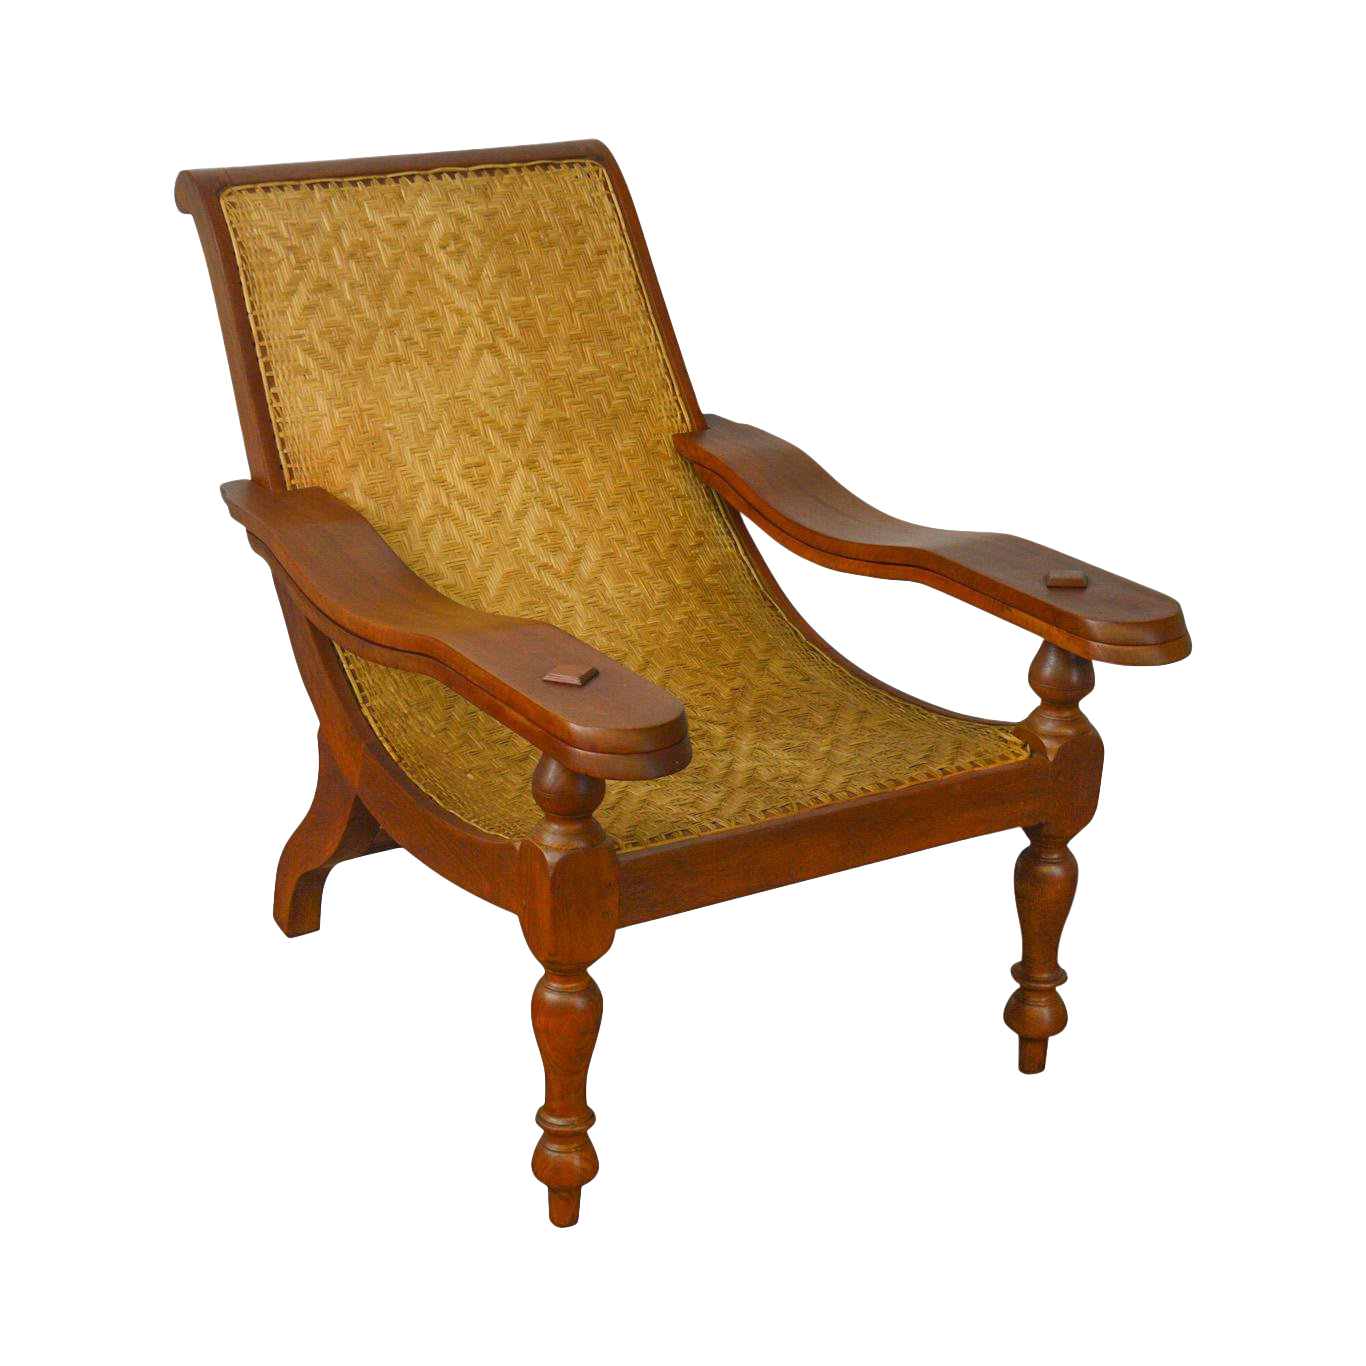 British Colonial West Indies Hardwood And Rattan Plantation Lounge Chair